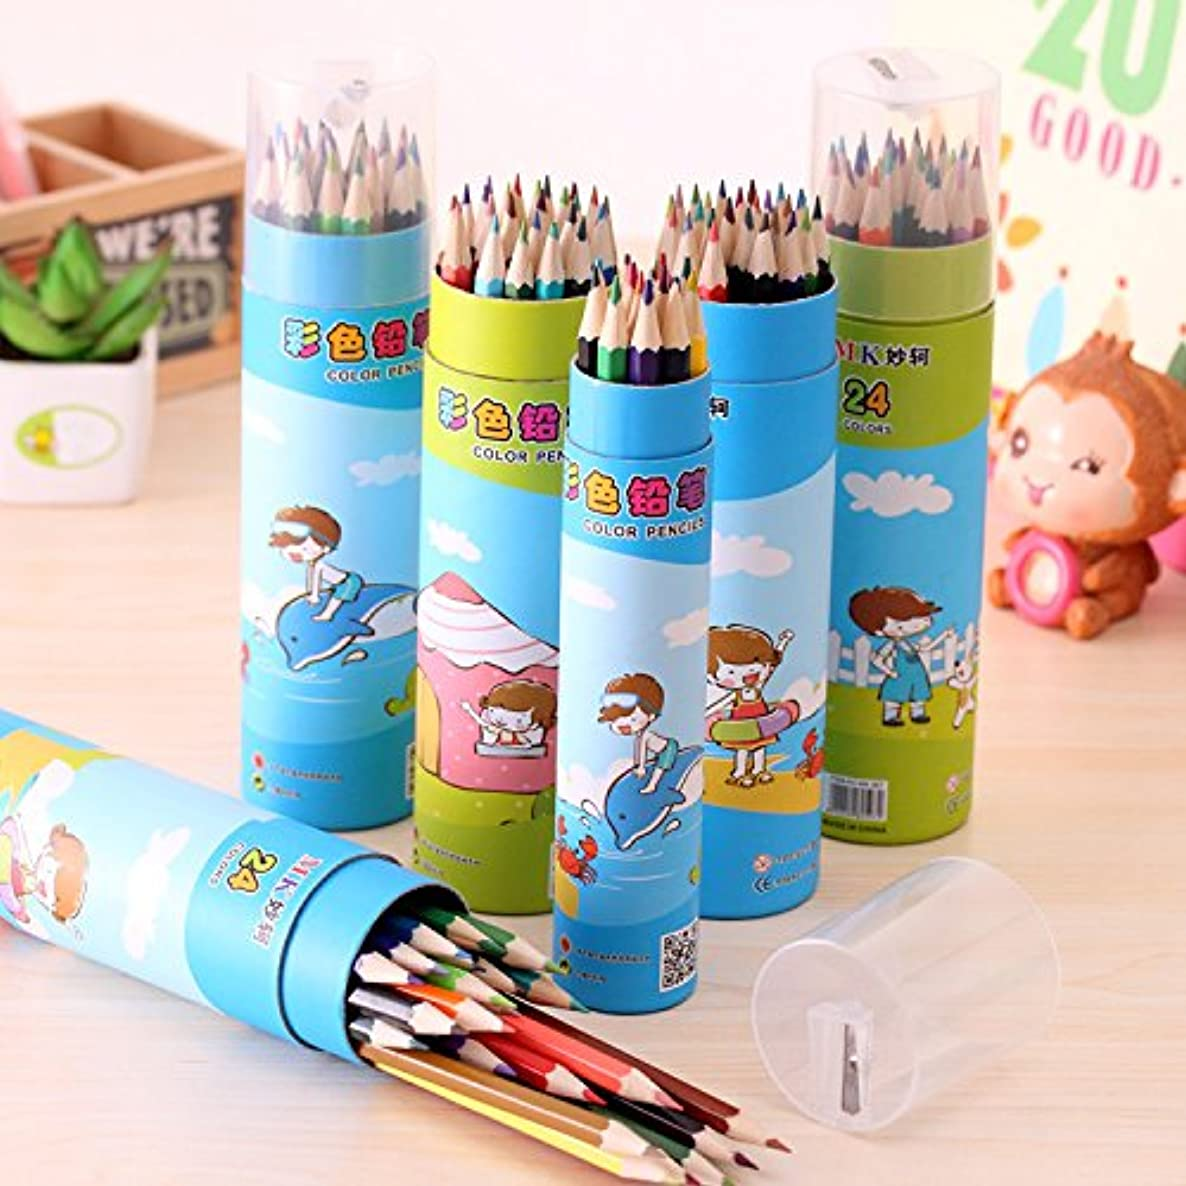 GMissT 24-color Colored Pencil GMissT Korean Cartoon Drawing Pencils With Fiber Container